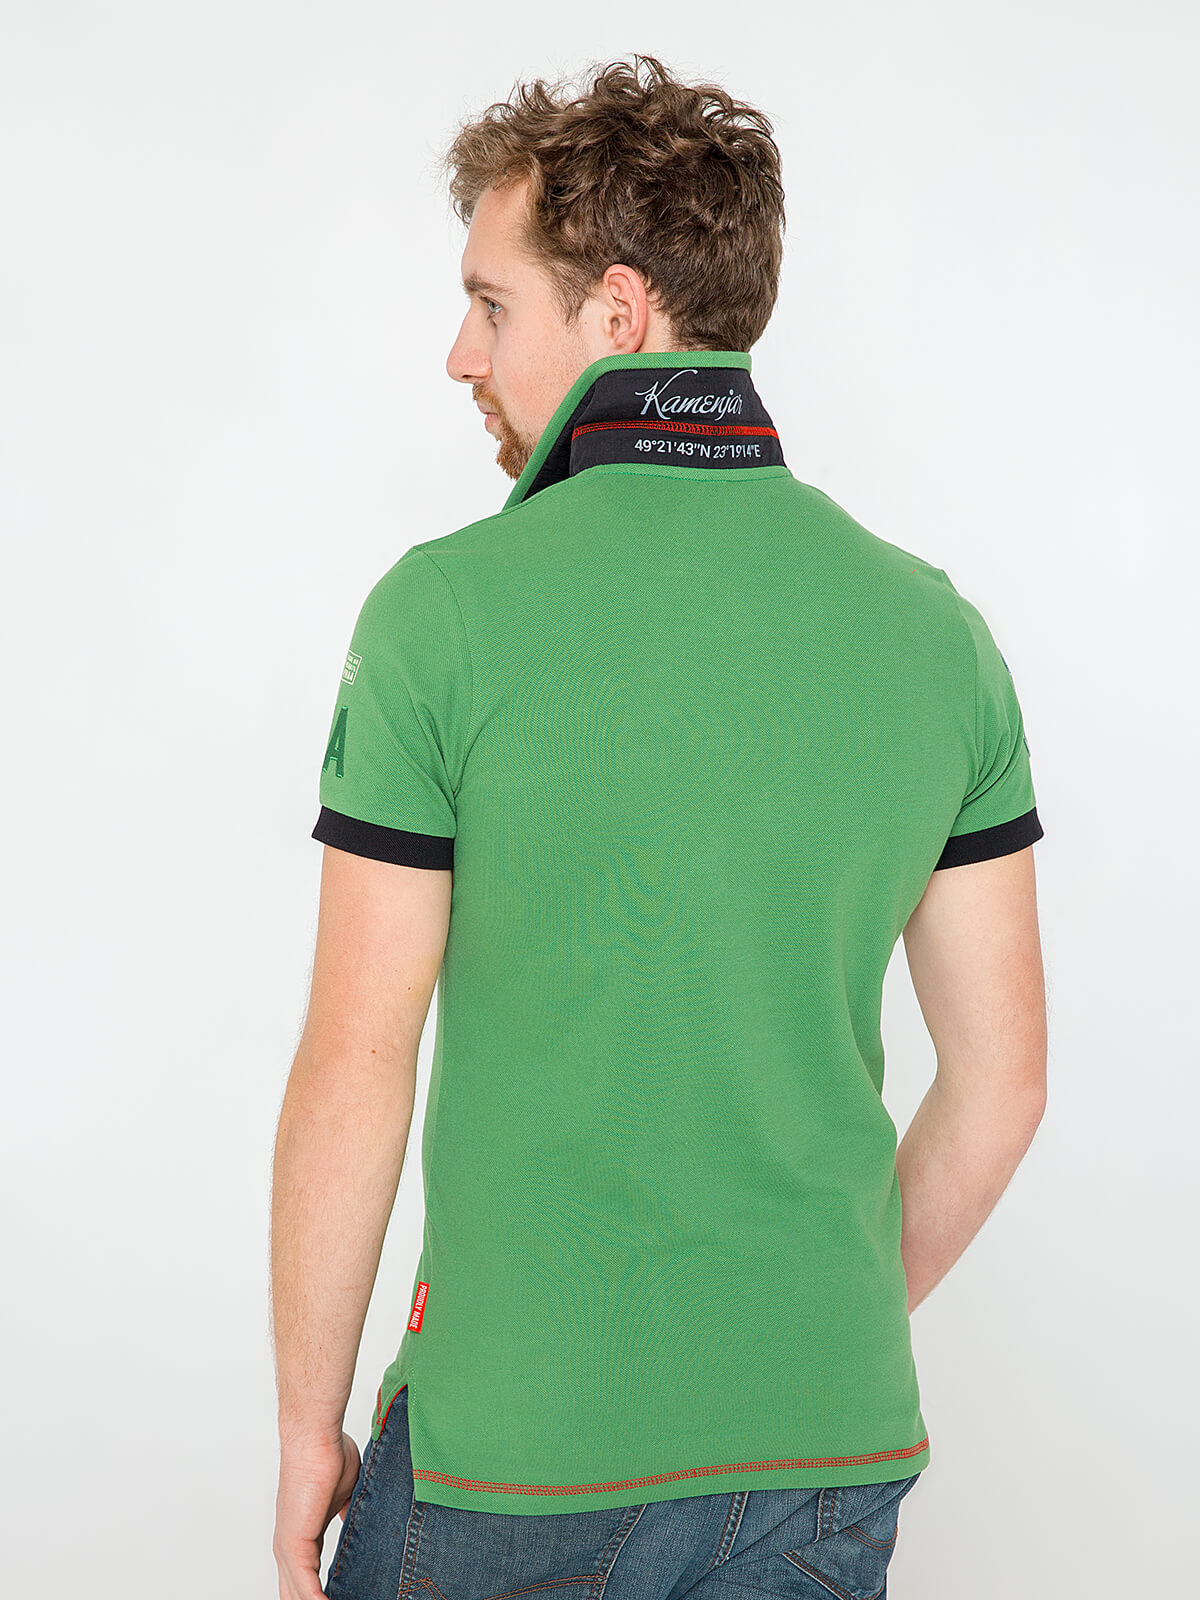 Men's Polo Shirt Ivan Franko. Color green.  Technique of prints applied:   embroidery, silkscreen printing, chevron.